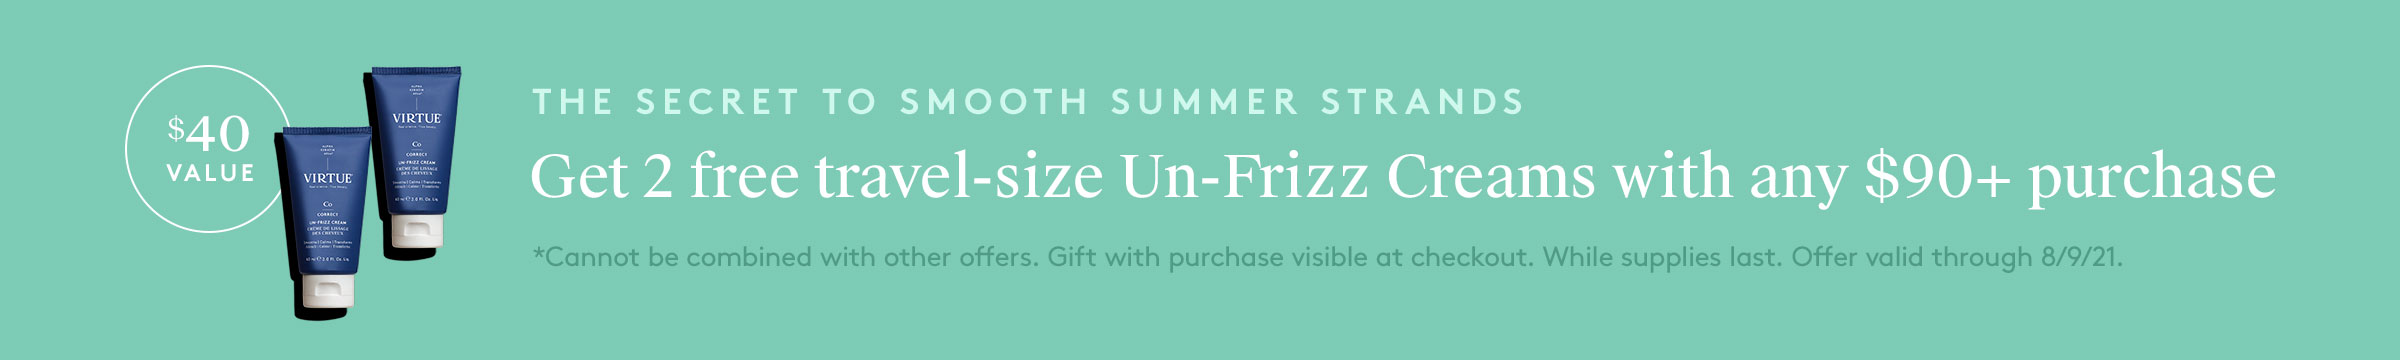 Get a Free full-size Un-Frizz Cream with any $90+ purchase